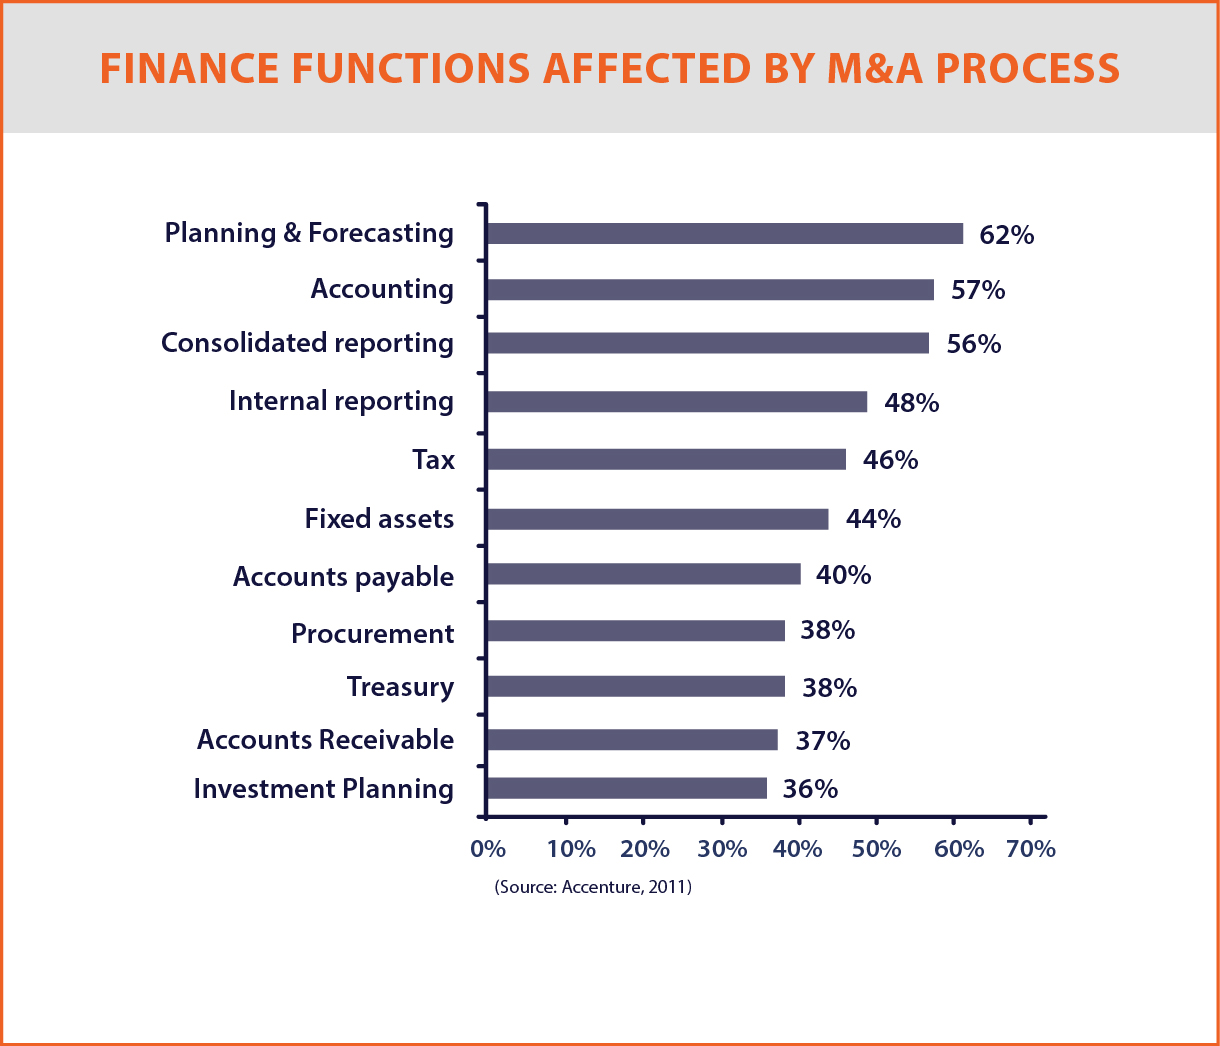 FINANCE FUNCTIONS AFFECTED BY M&A PROCESS GRAPHS